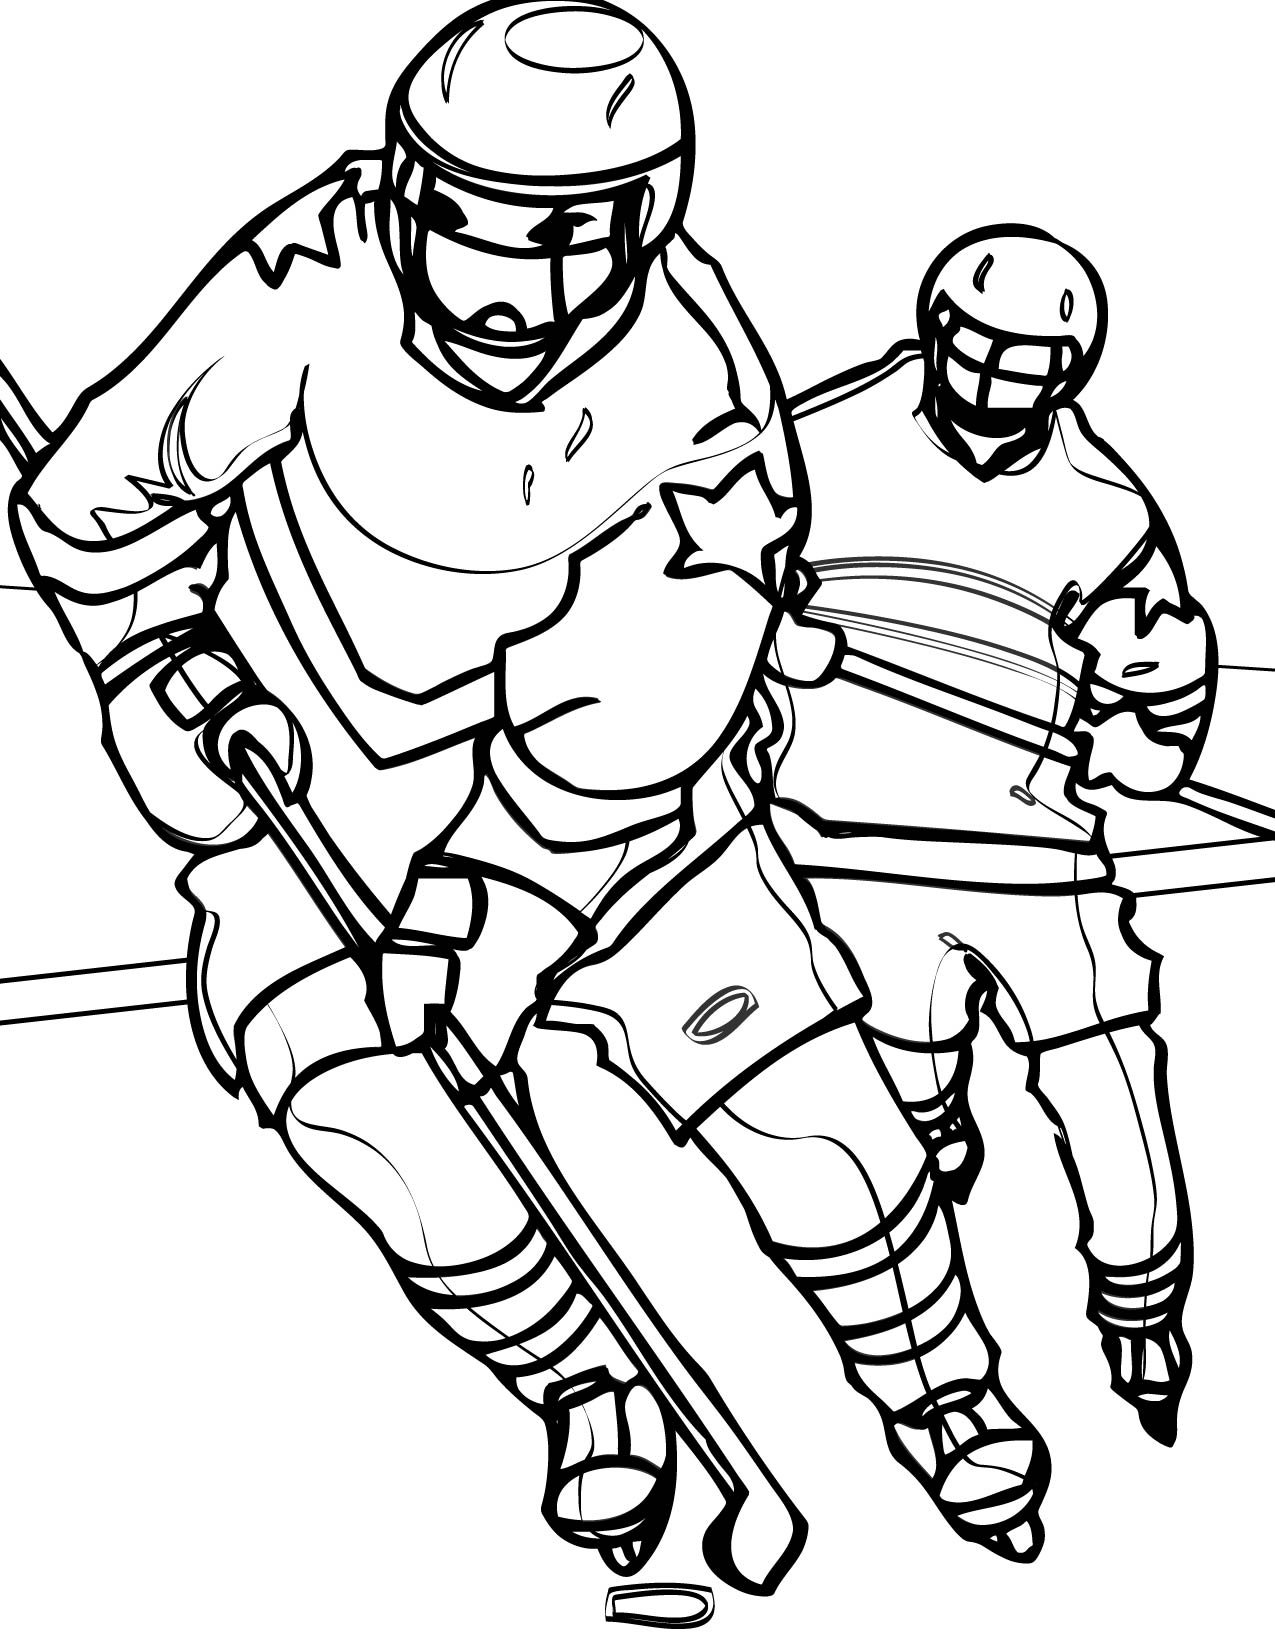 Coloring Pages Sports : Free coloring pages of sports logos